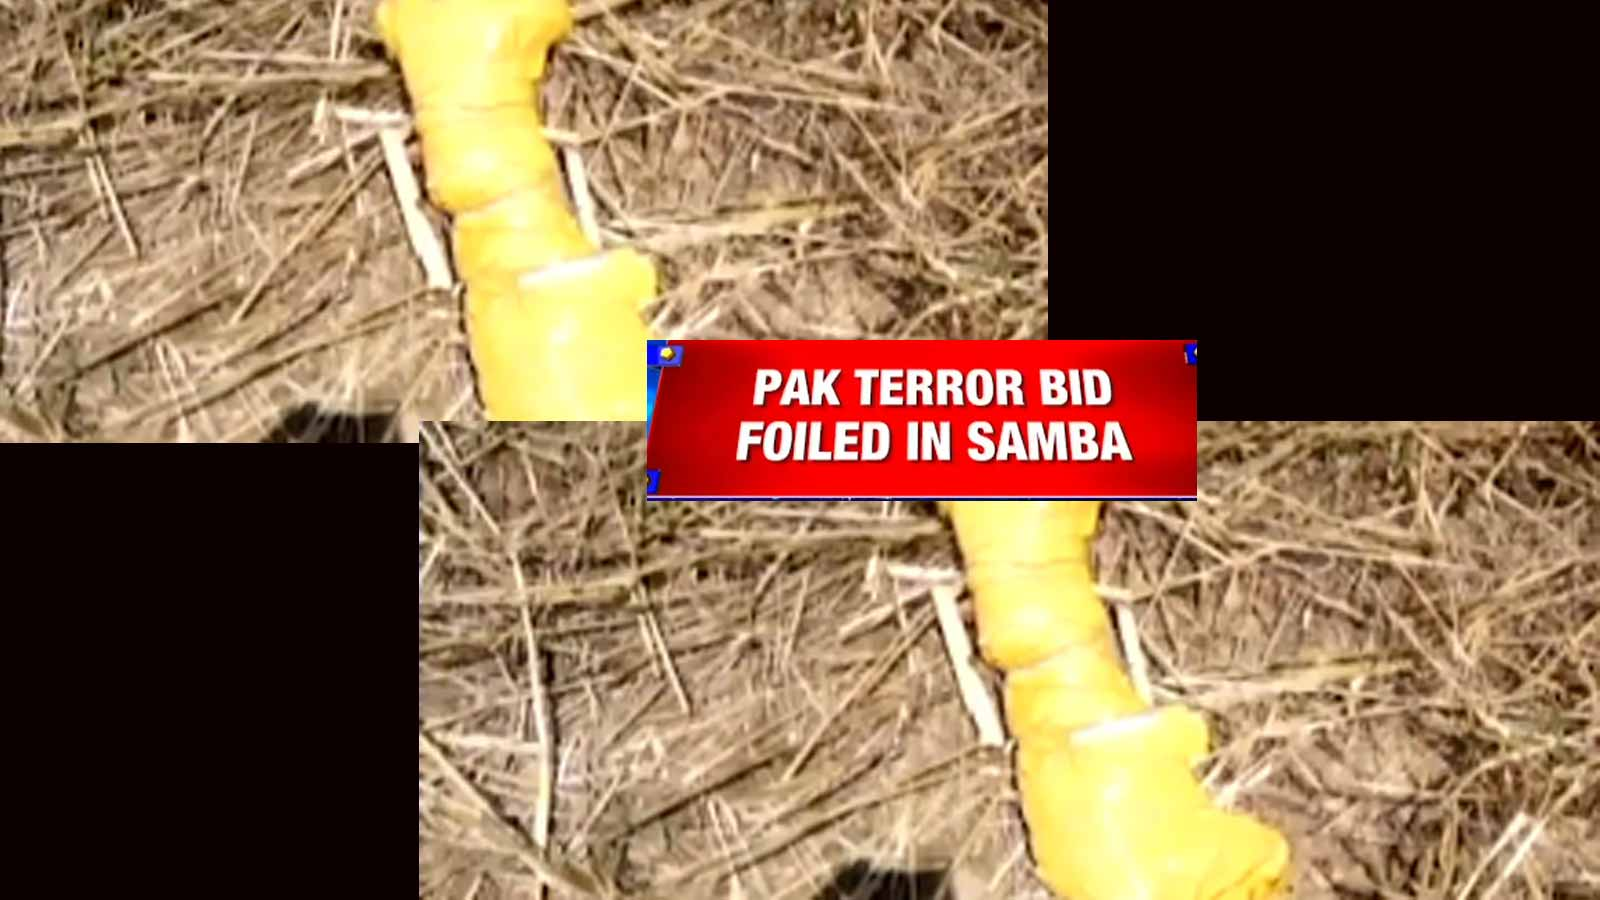 jk-bsf-recovers-weapons-consignment-dropped-by-pakistan-drone-in-samba